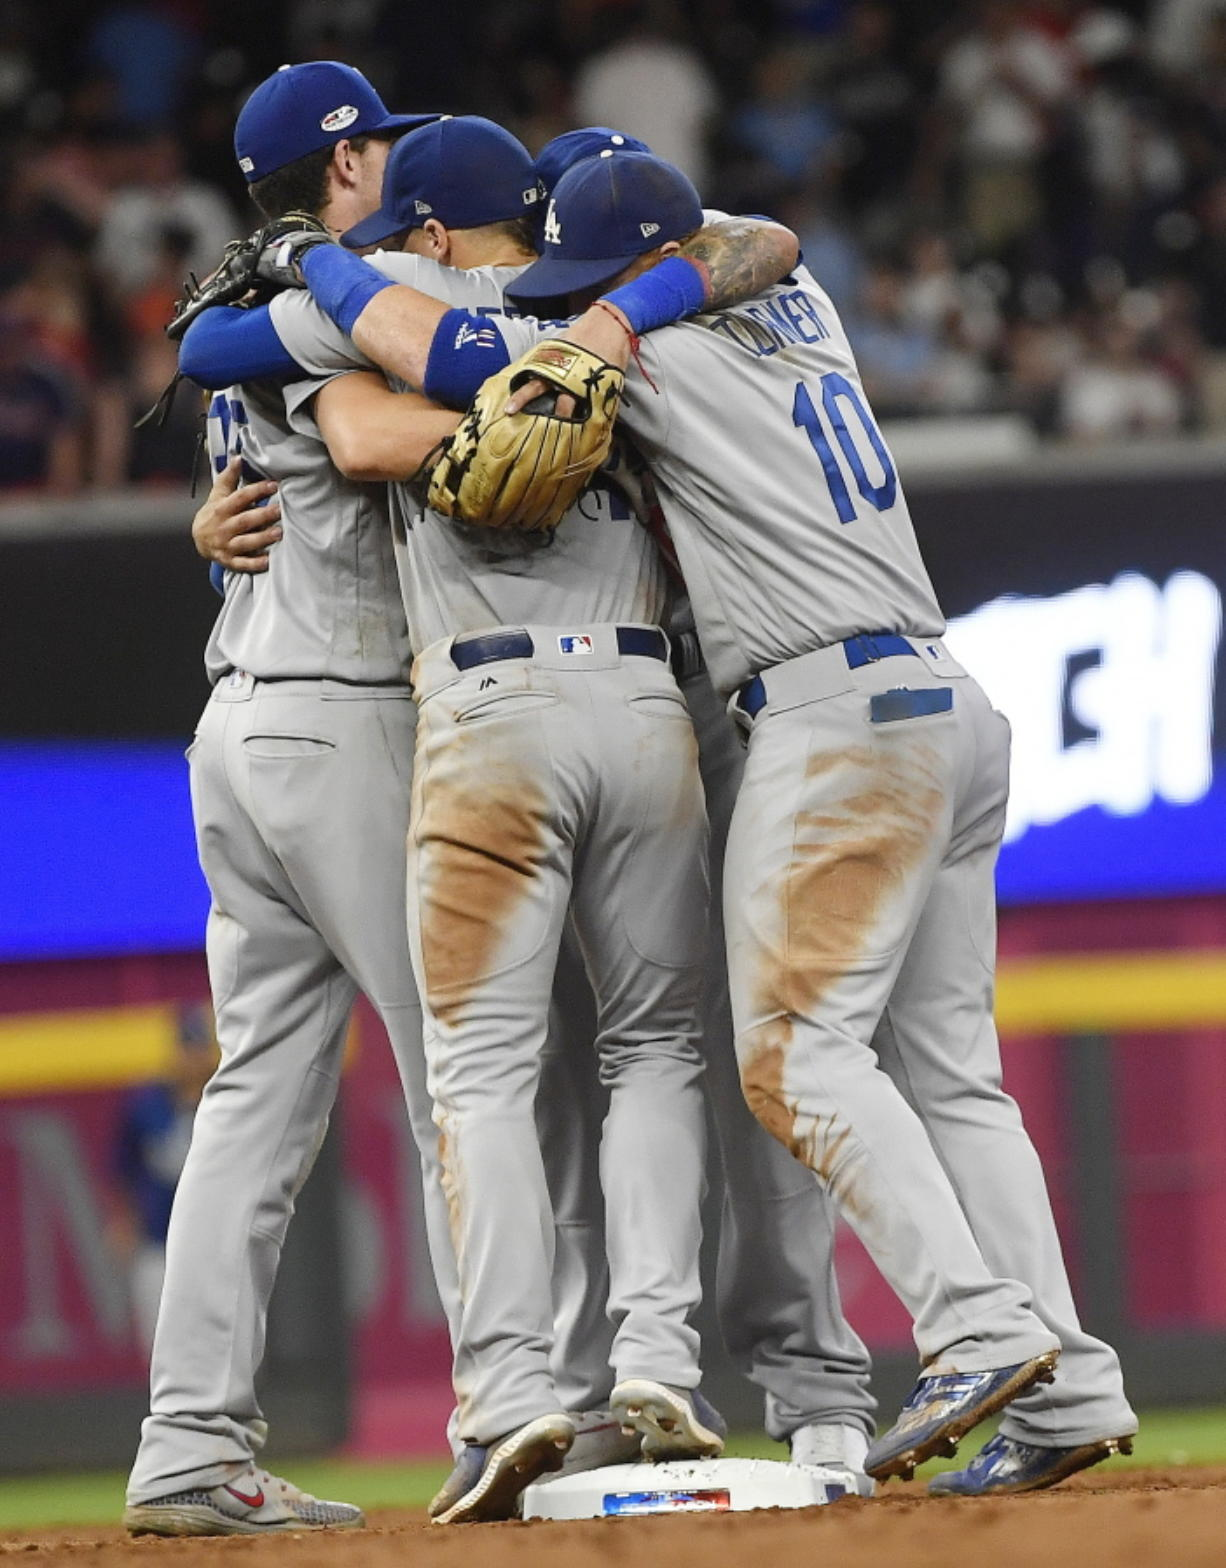 Dodgers finish off Braves in NLDS with 6-2 win - Columbian com